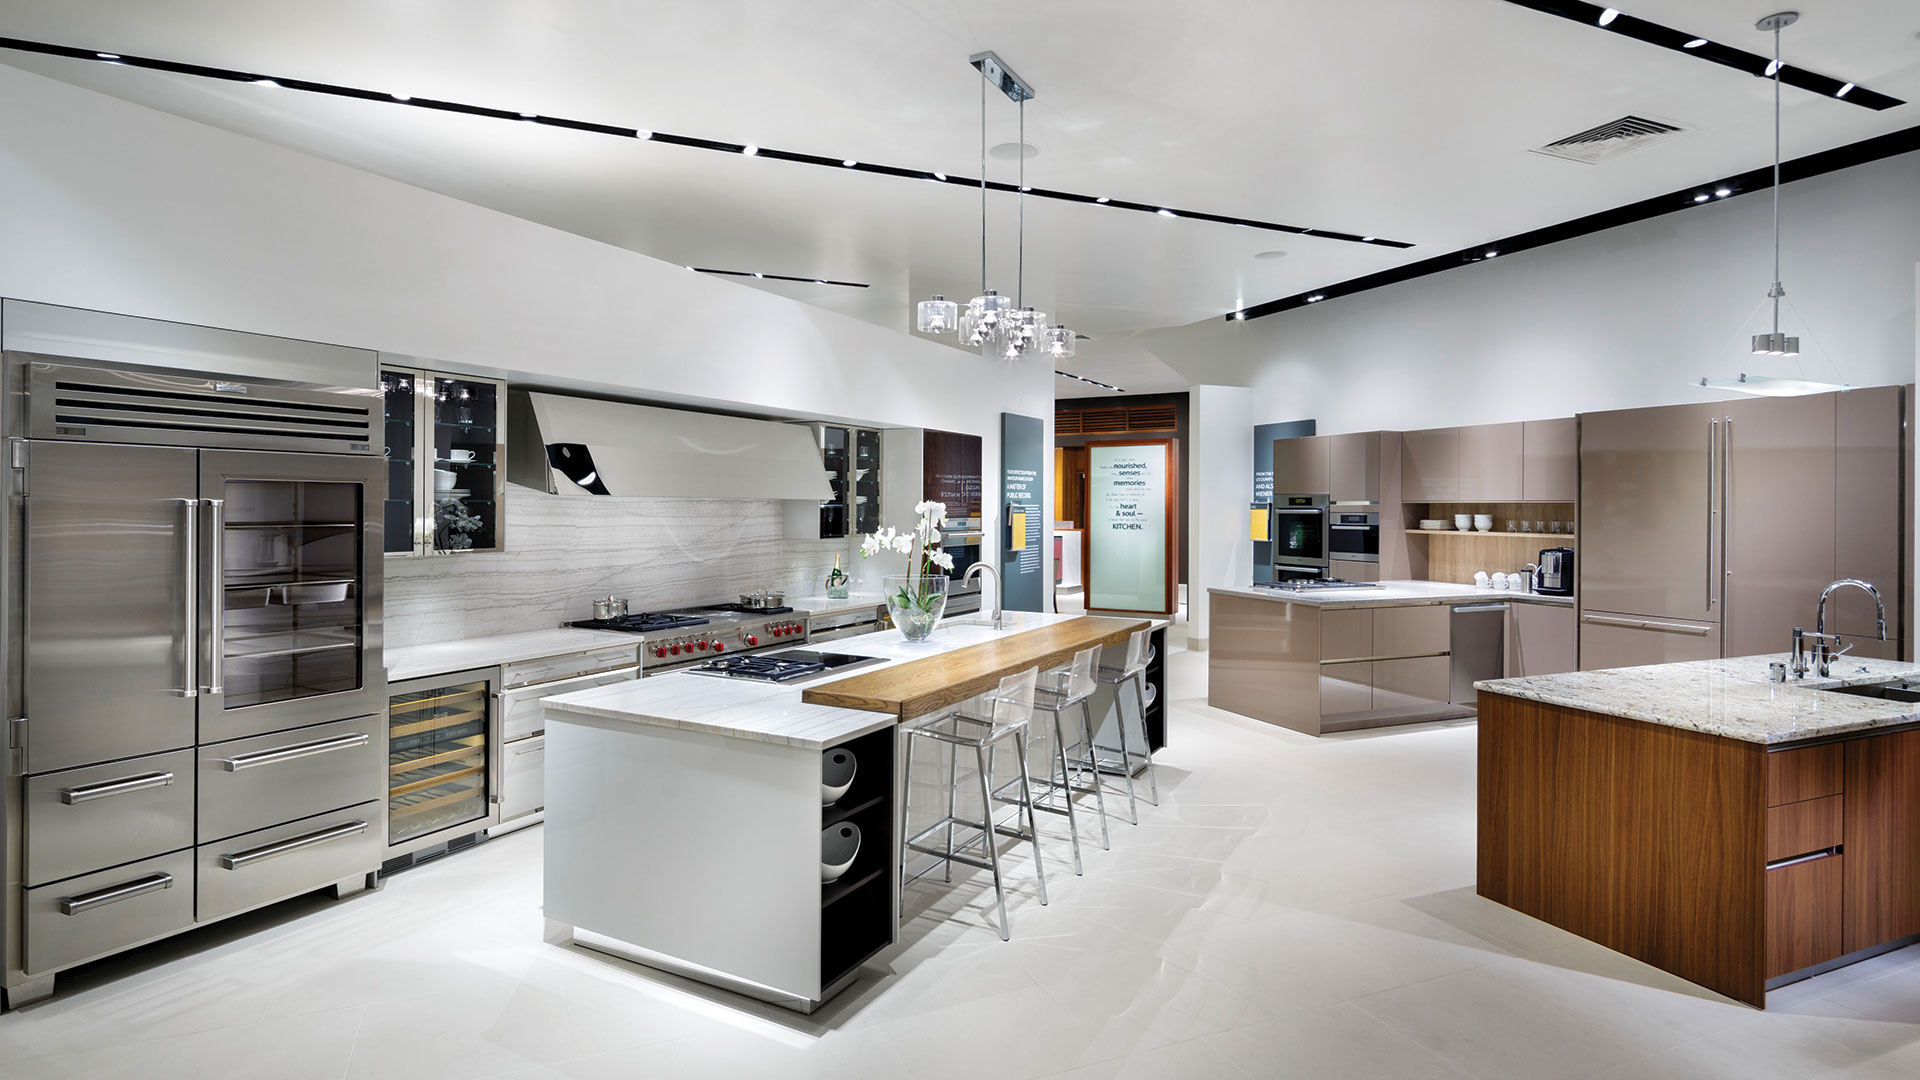 Pirch Kitchen Showroom, Retail Design